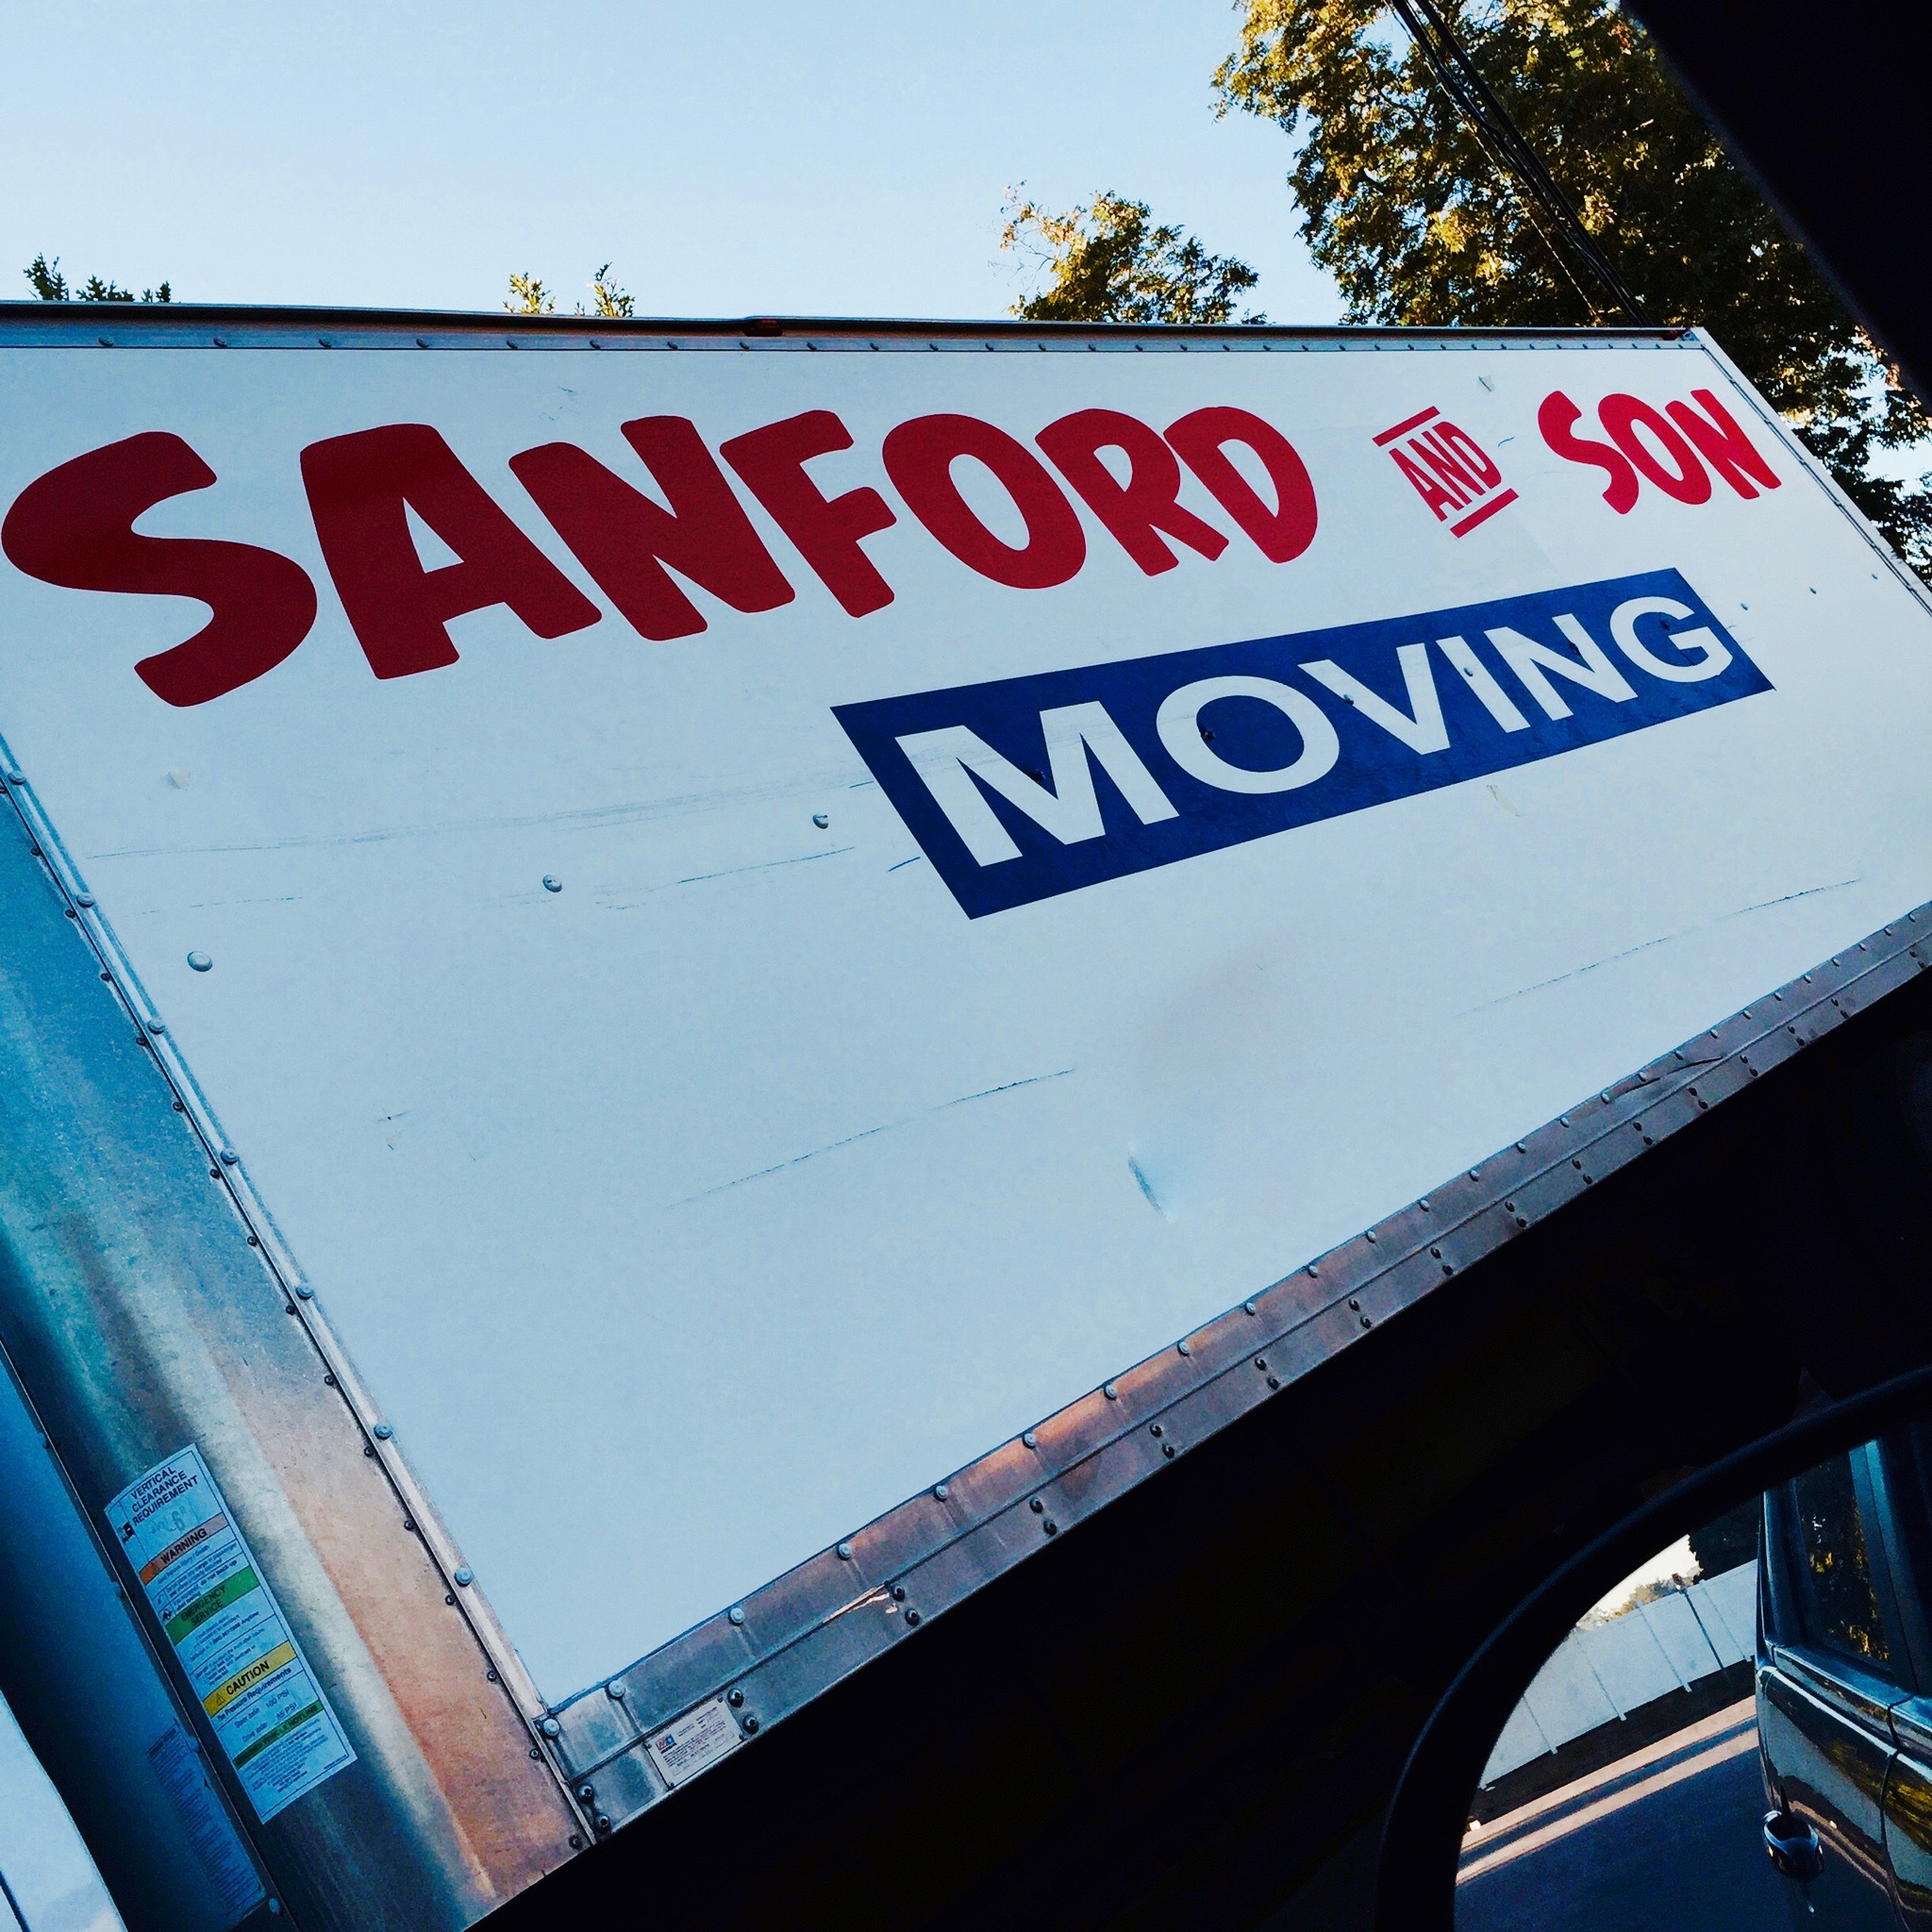 Sanford and Son Moving